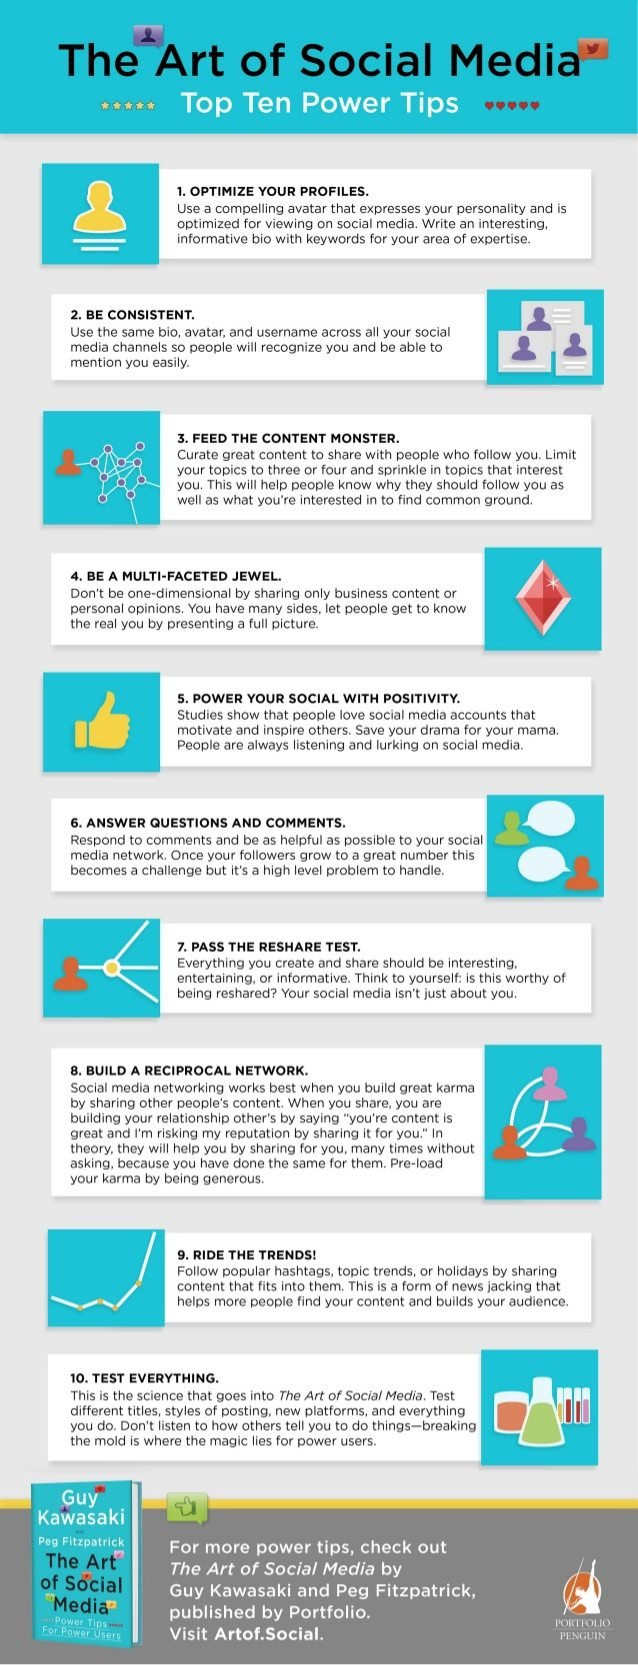 Top 10 power tips for #Social_Media #SMM #Infographic